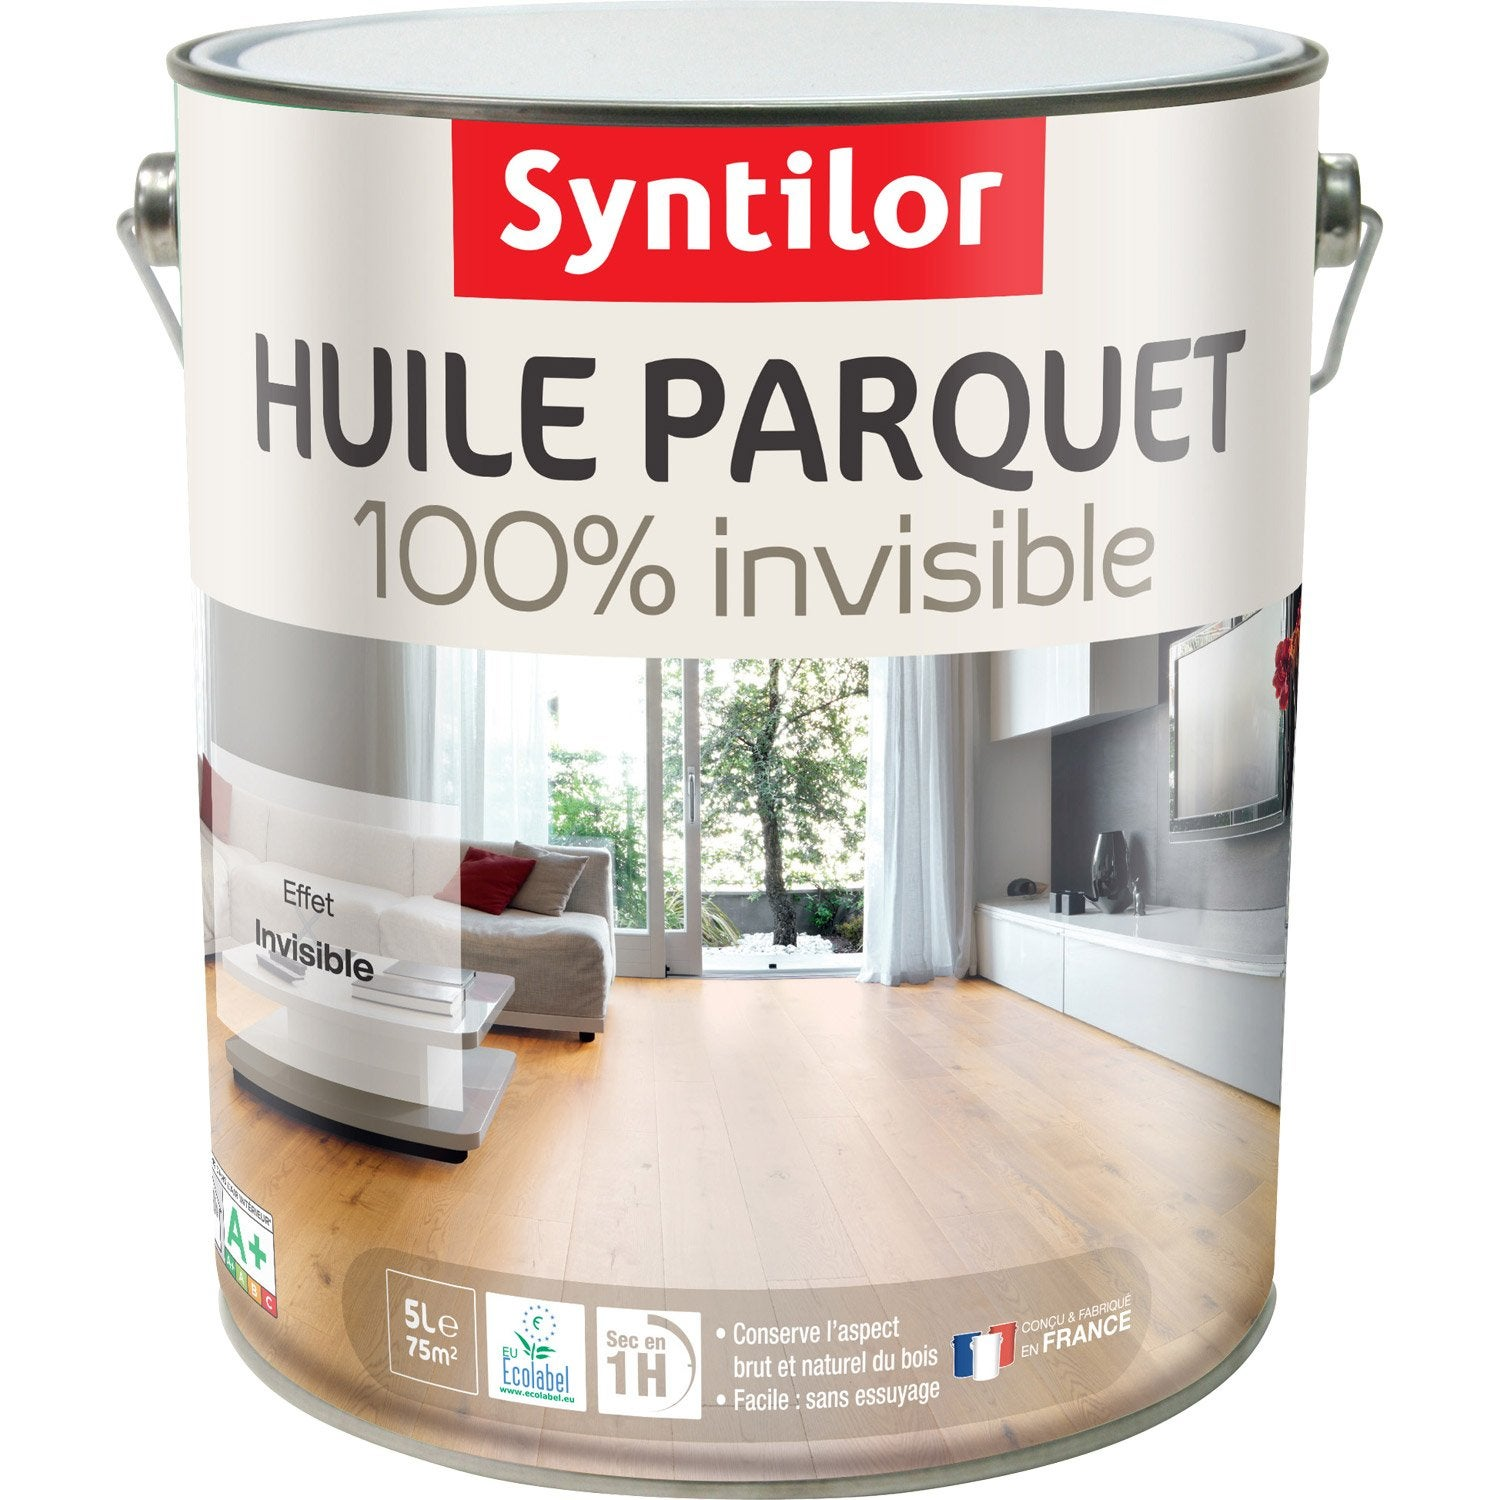 huile parquet 100 invisible syntilor incolore 5 l leroy merlin. Black Bedroom Furniture Sets. Home Design Ideas